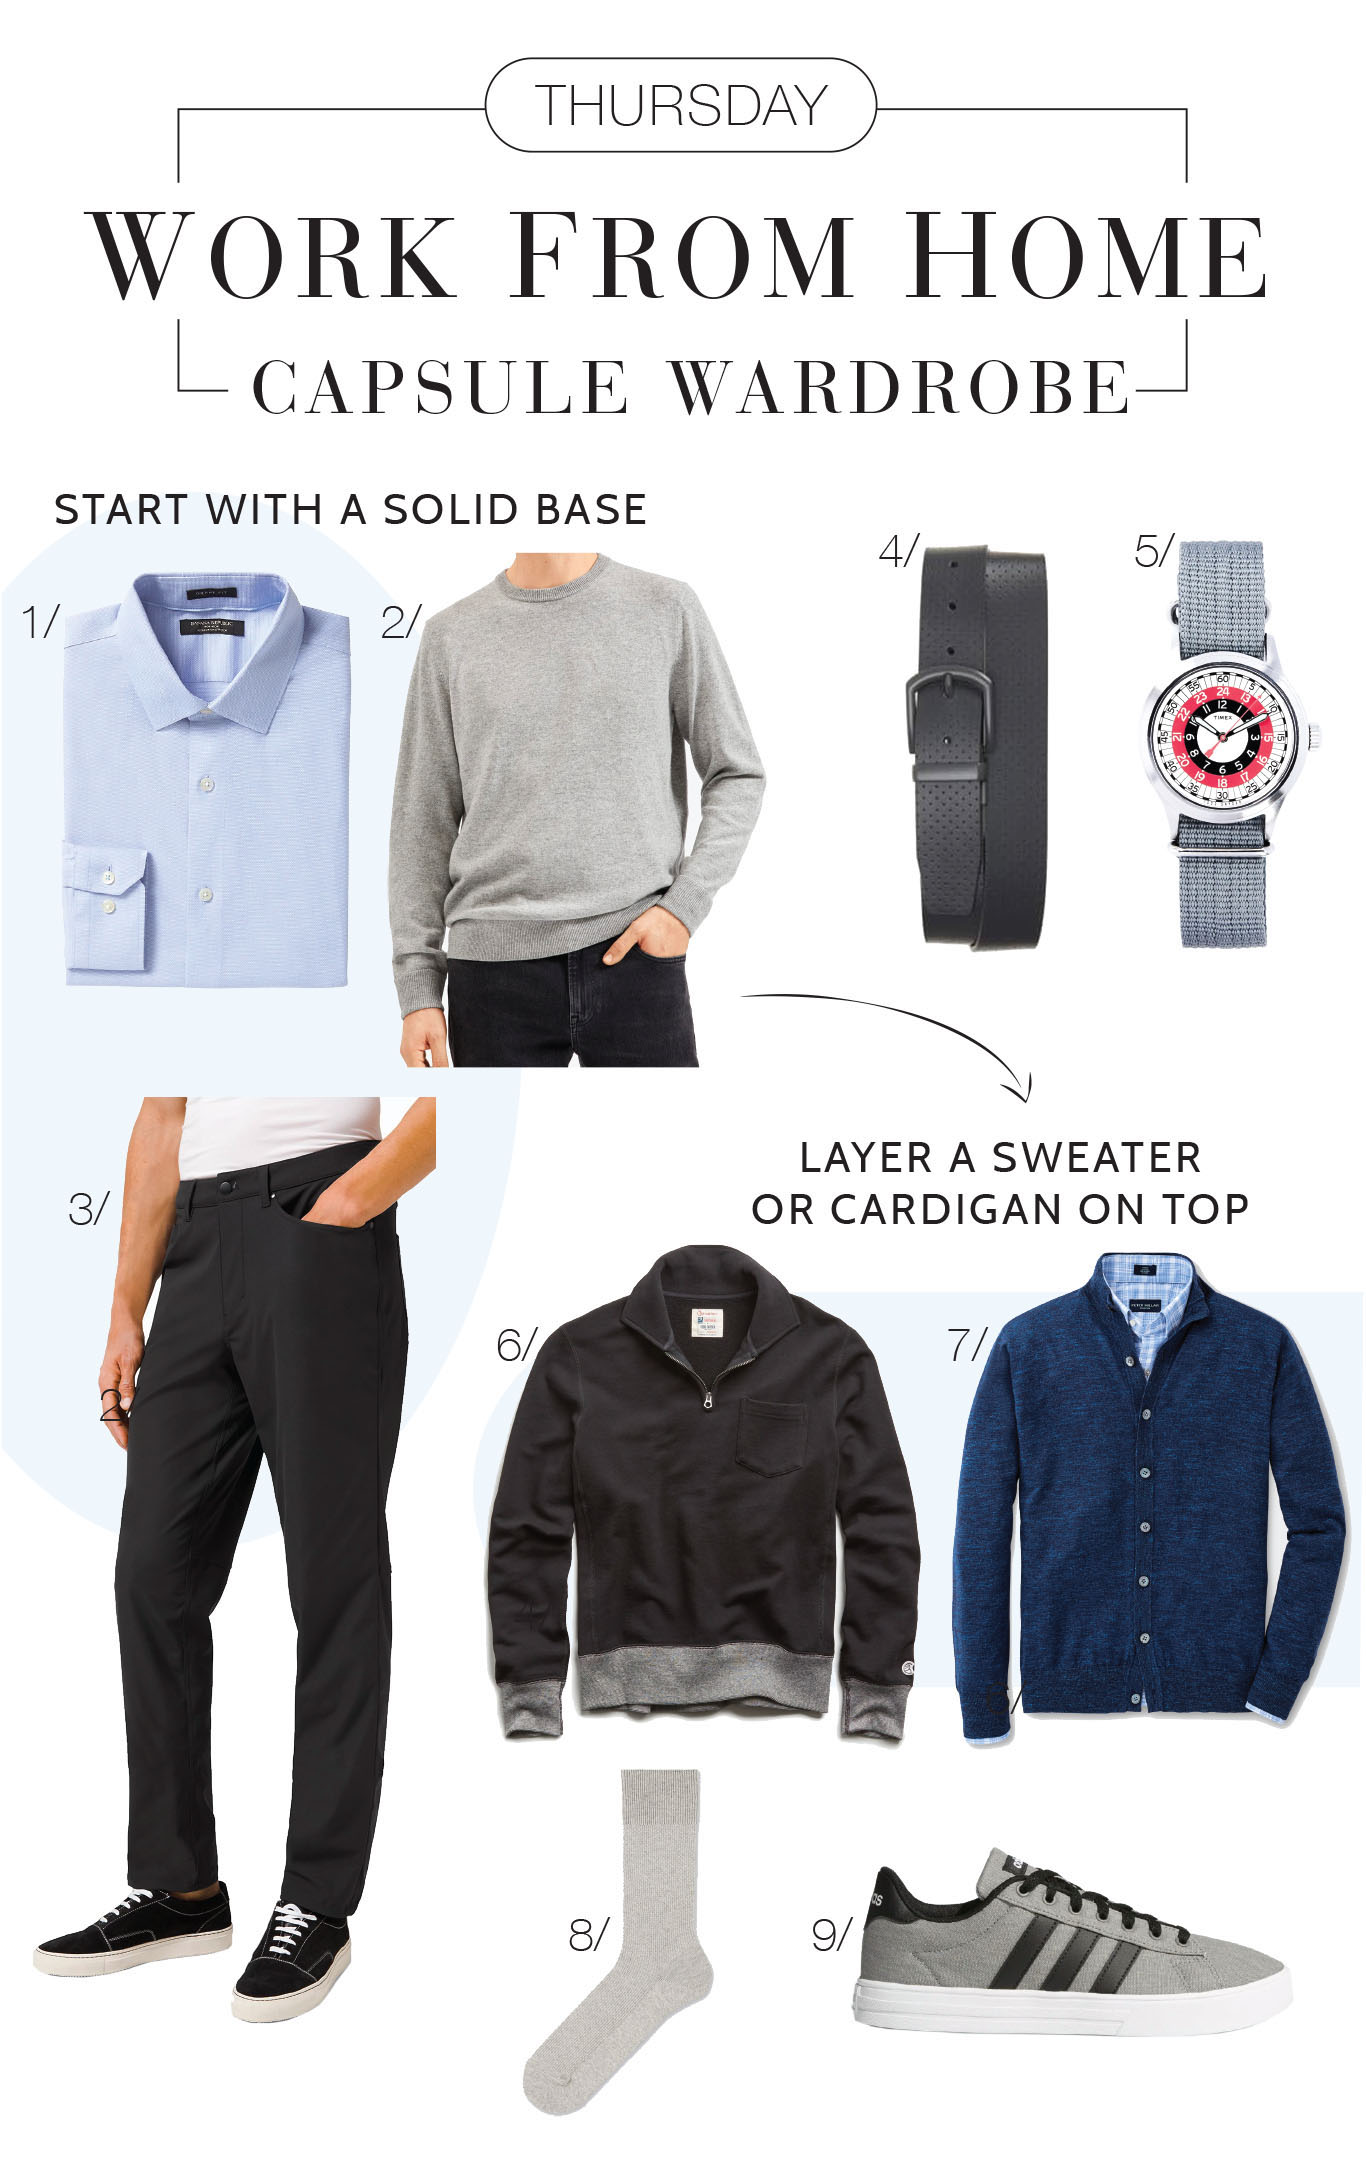 A Dress For The Job You Have/Want #StayAtHome Quarantine Edition – for men. Our work from home capsule wardrobe for all 7 days, to please everyone in the house.